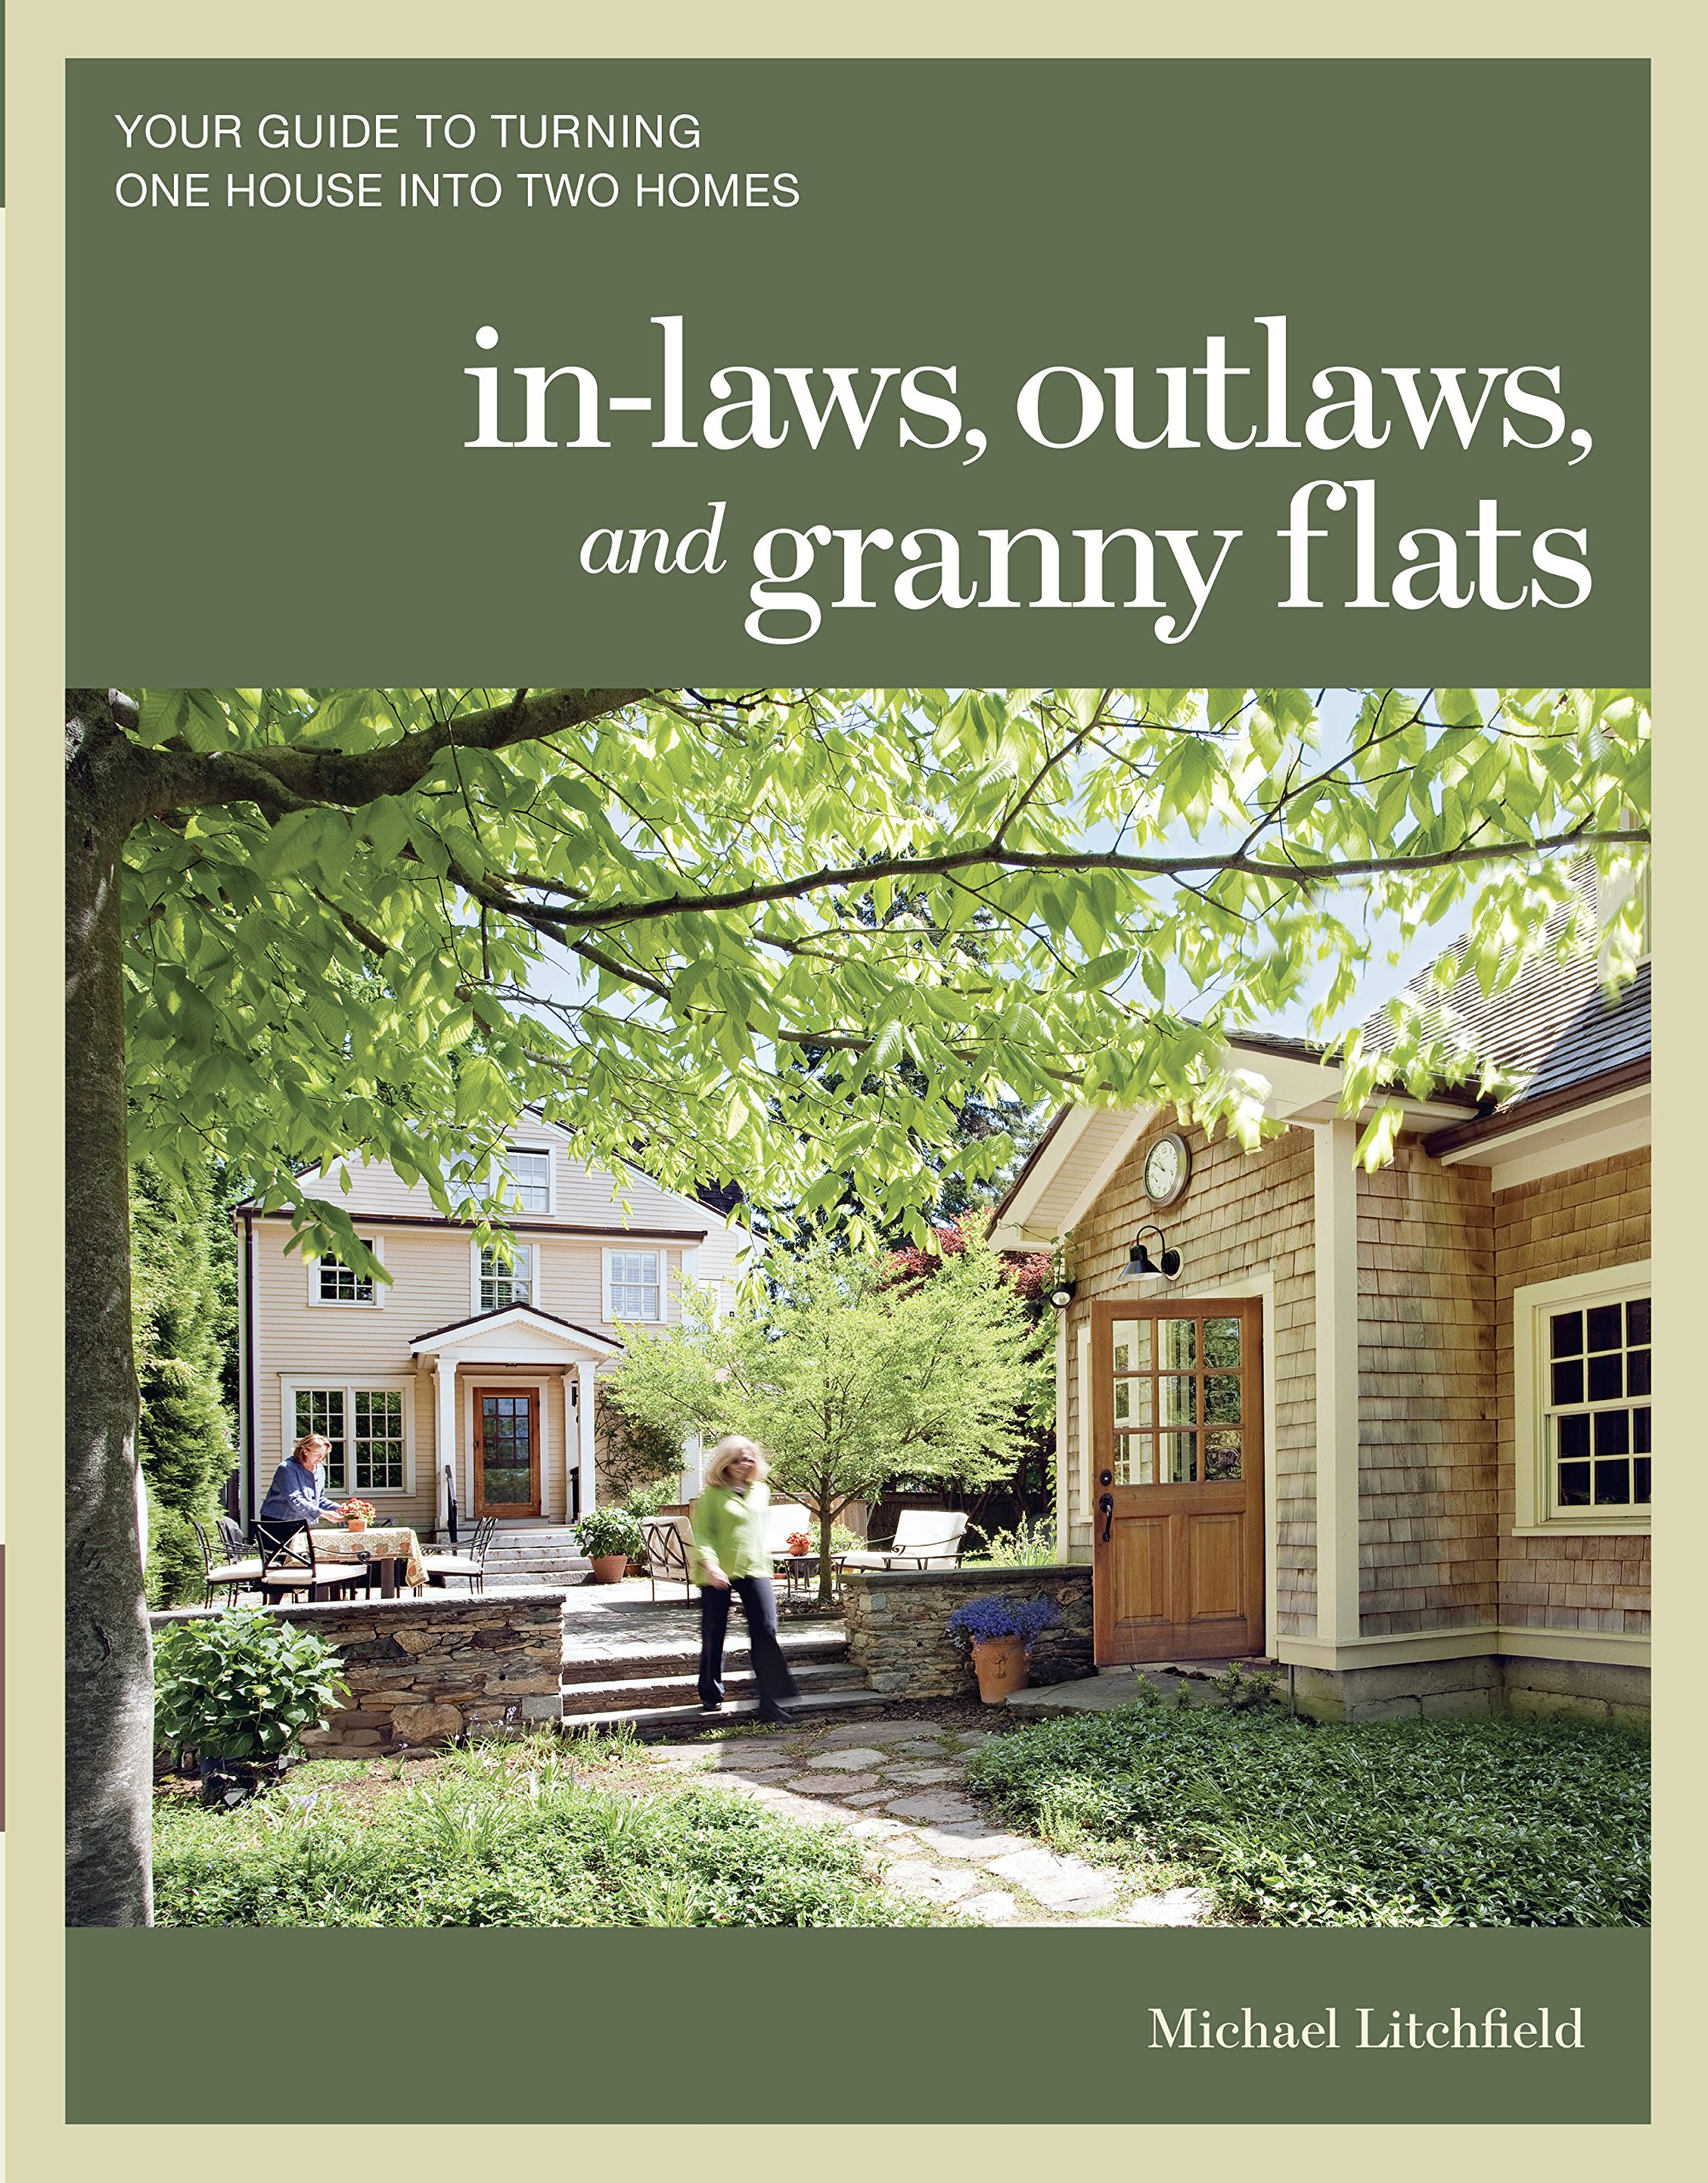 In-laws, Outlaws, and Granny Flats: Your Guide to Turning One House into  Two Homes: Michael Litchfield: 9781600852510: Amazon.com: Books